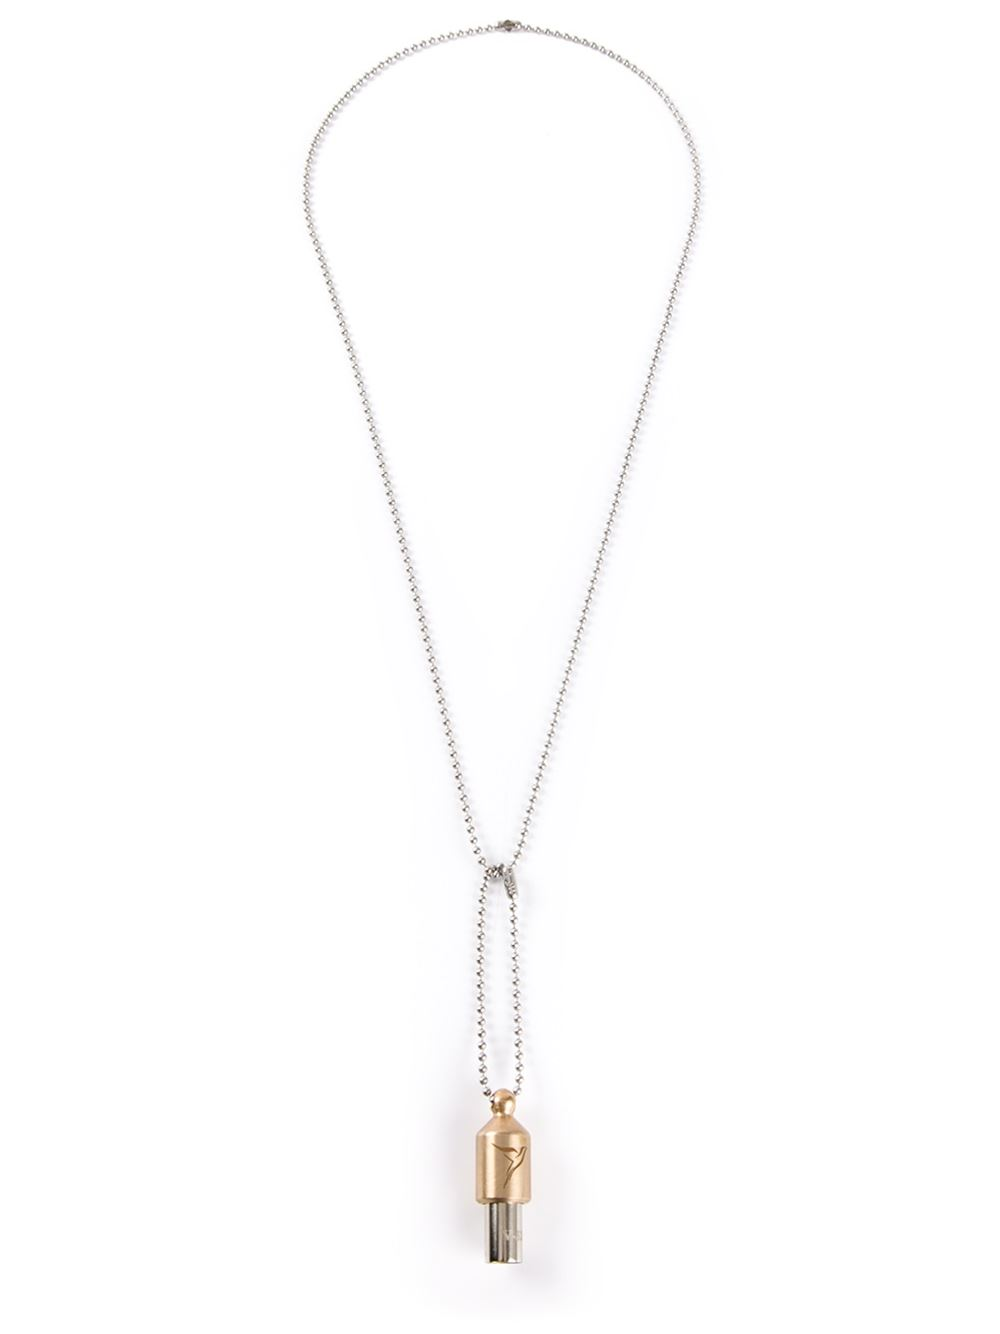 Love Tuner Necklace $78.00